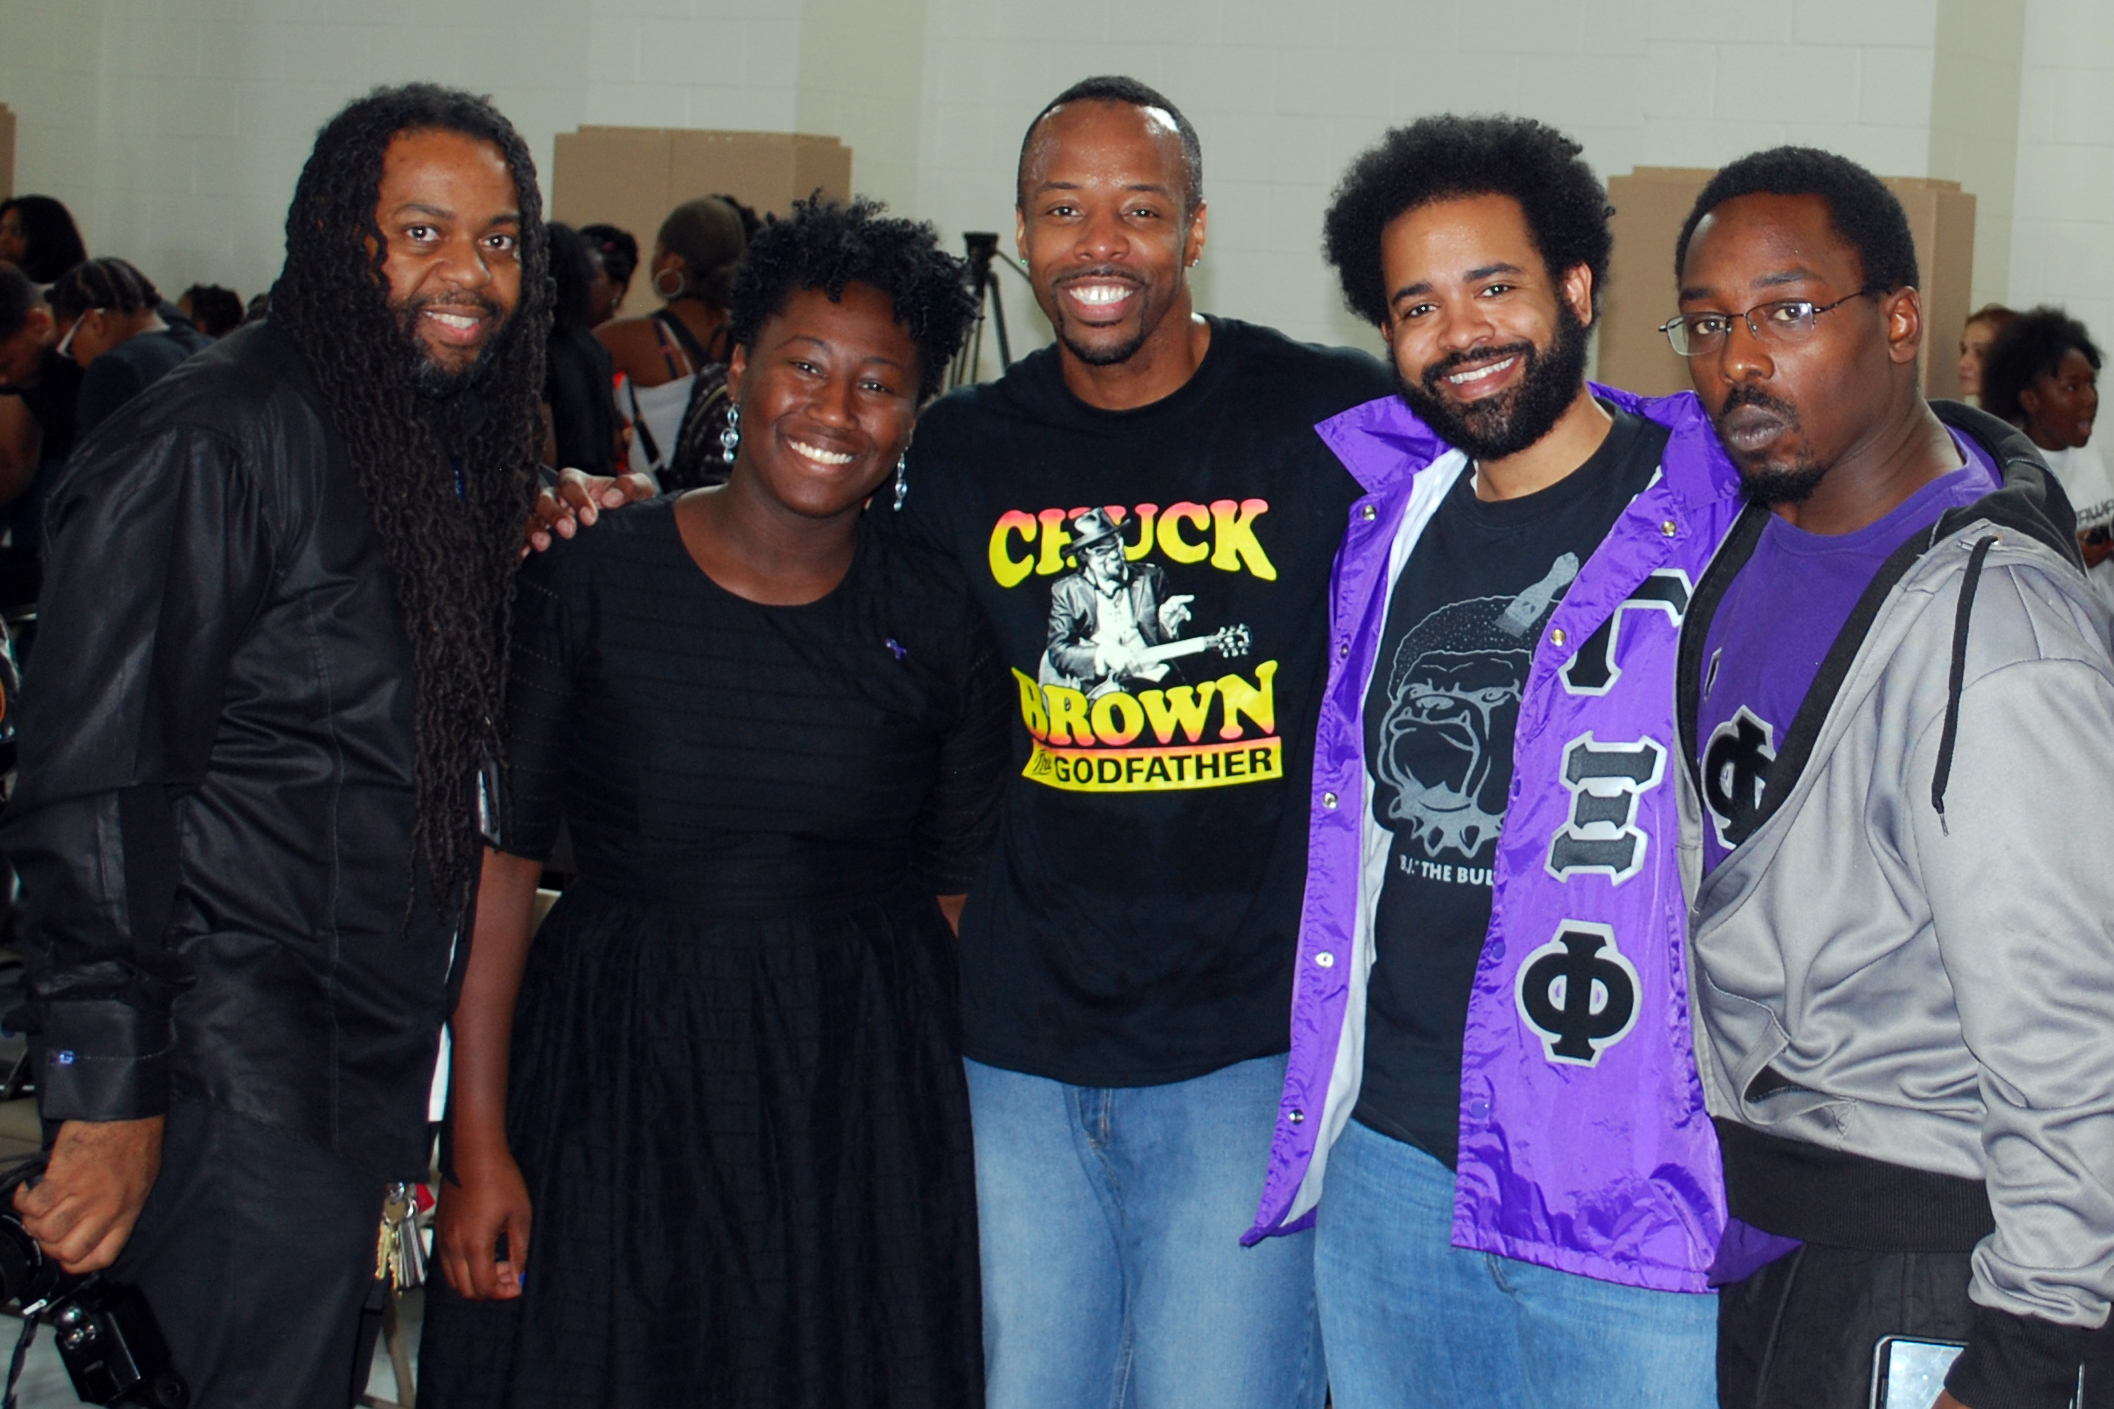 District of Columbia Chapter Supports Honorary Member and Step Afrika